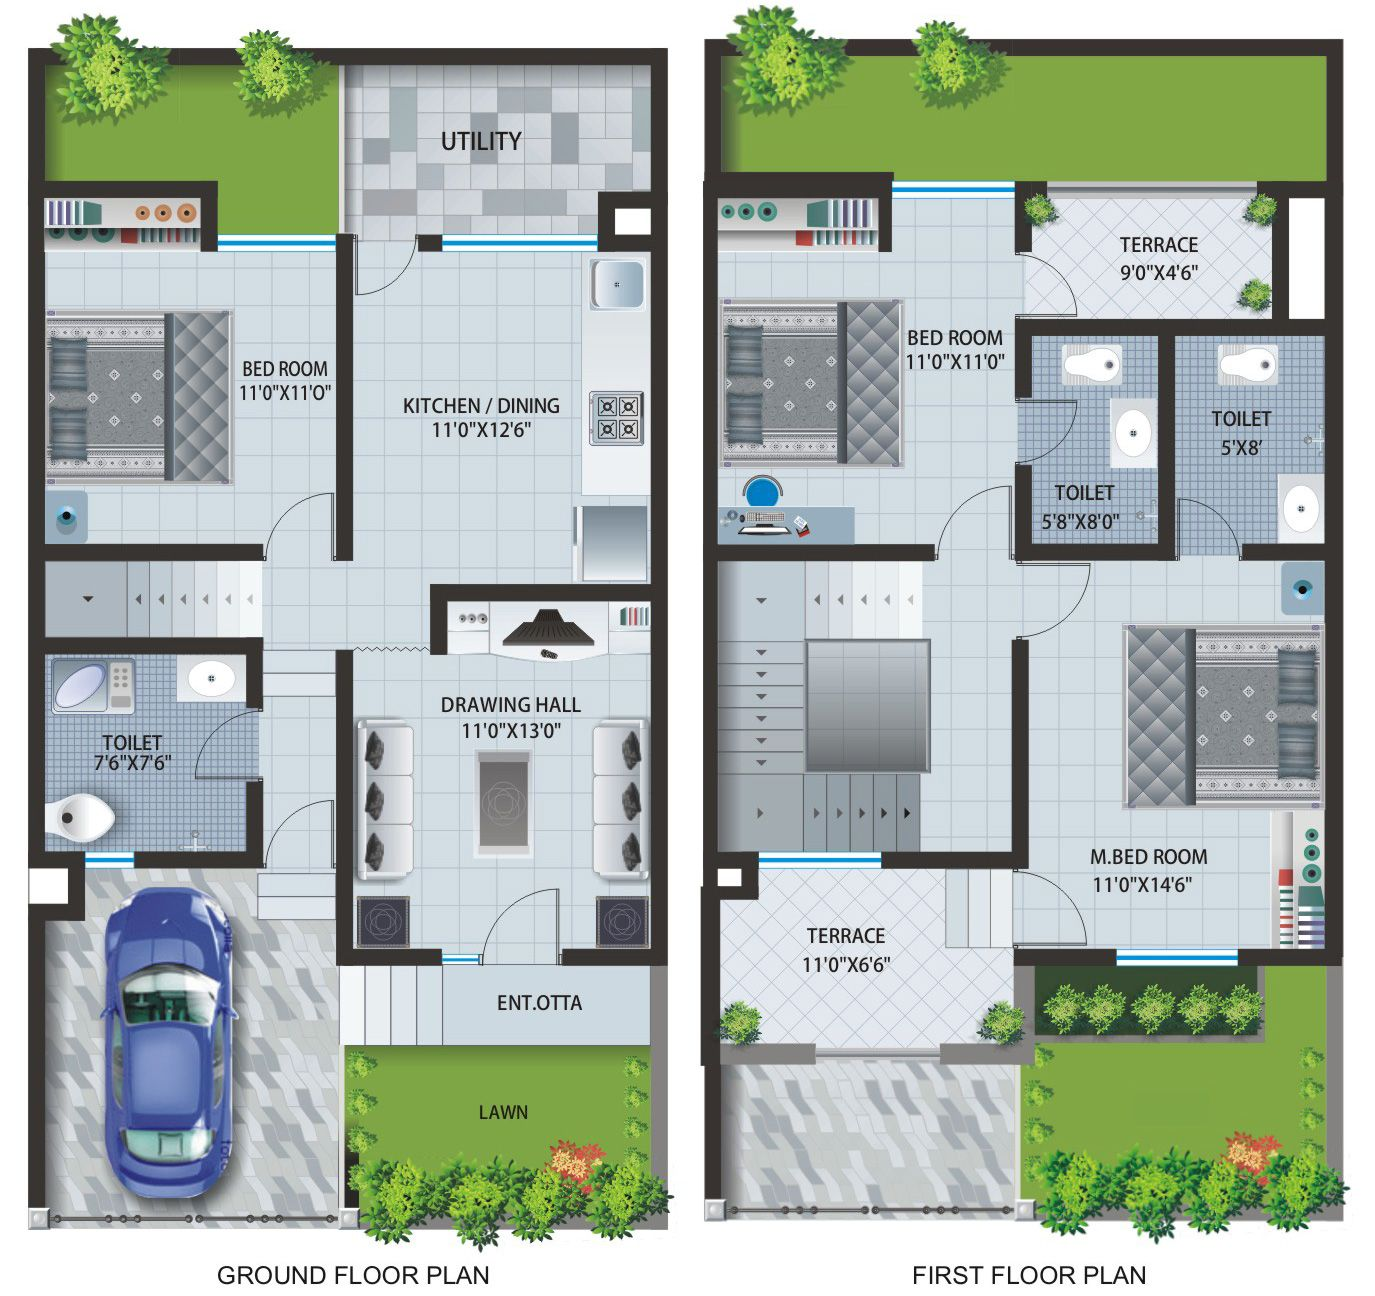 Floor plans of apartments row houses at caroline baner for Top house plan websites